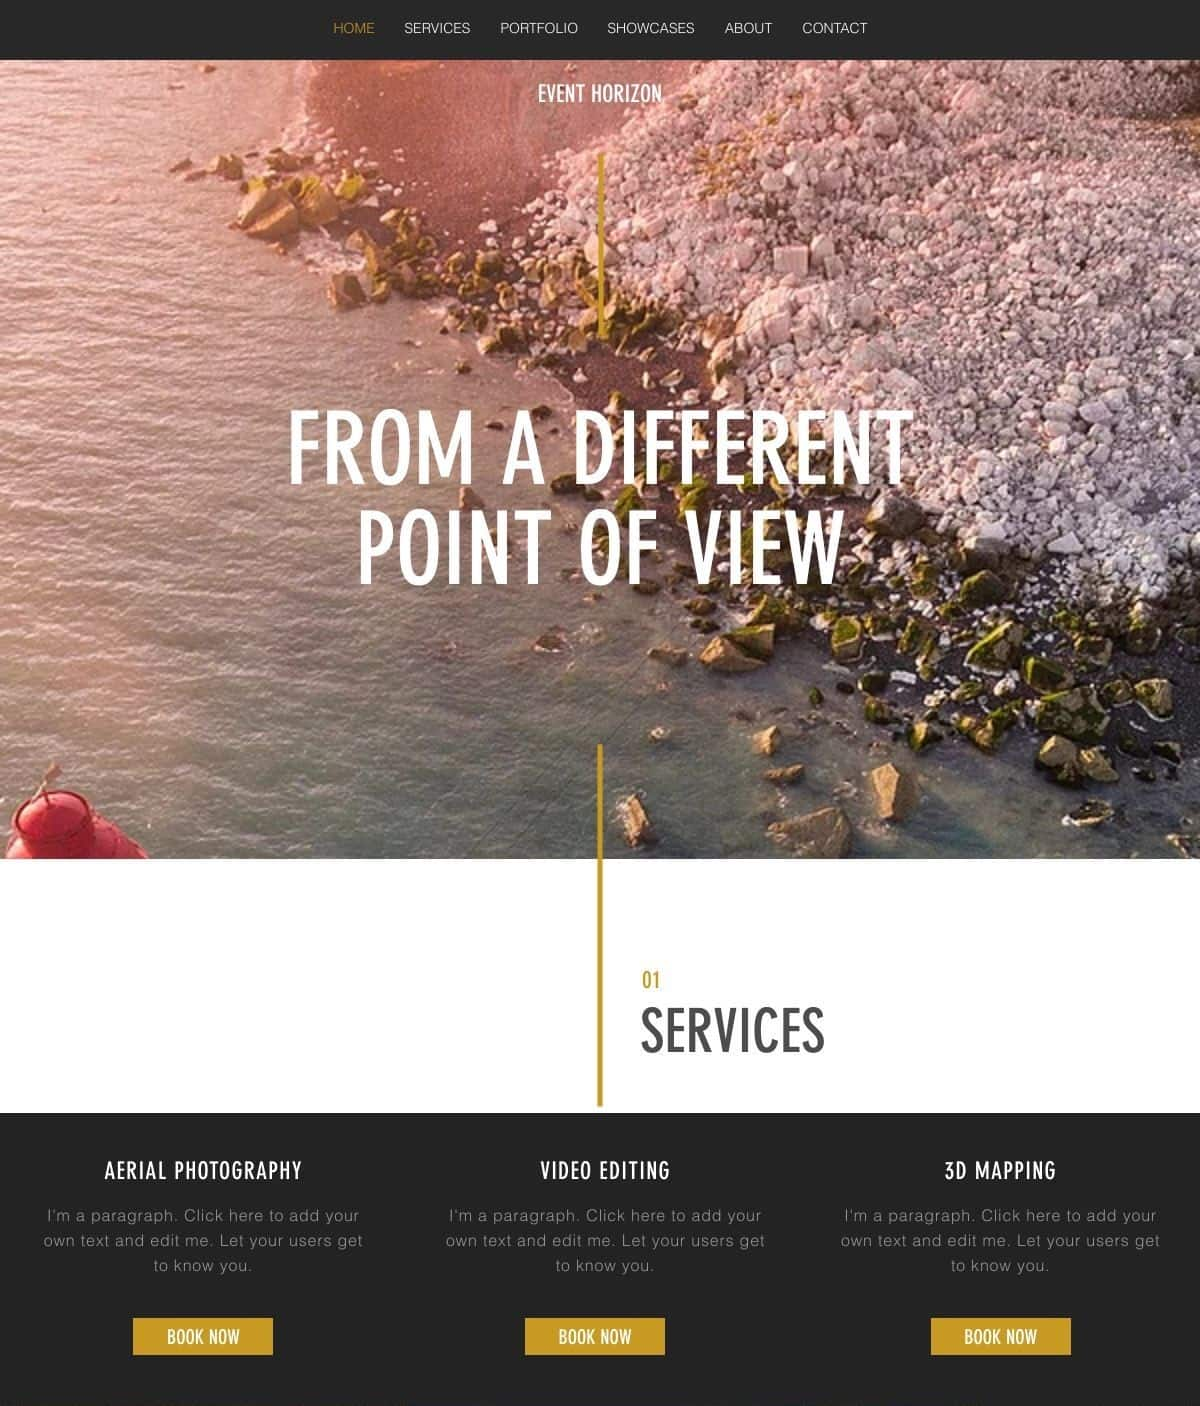 6 Best Wix Photography Website Templates (+3 Worst)-image3